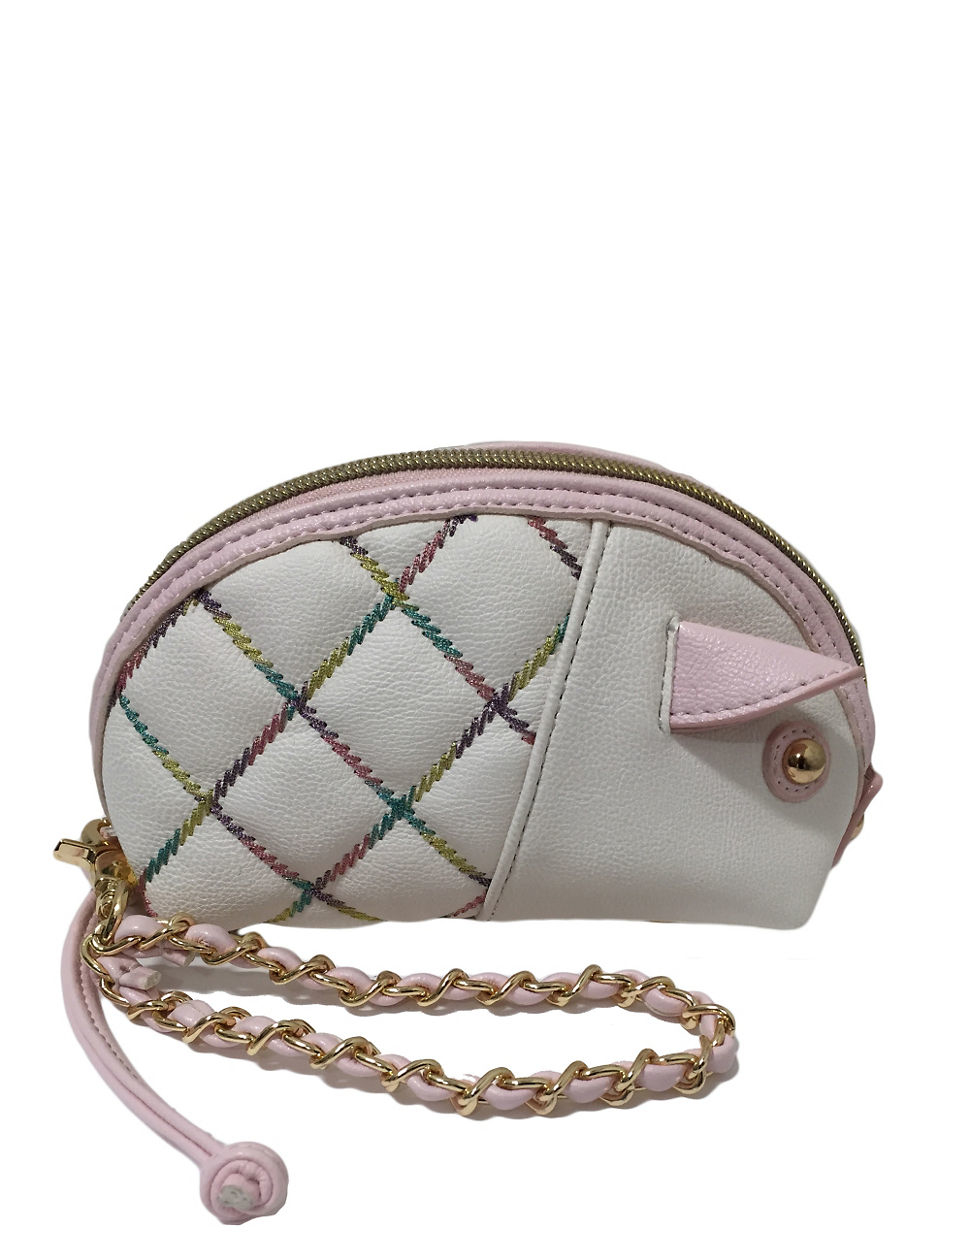 Betsey Johnson Cotton Candy Pig Wristlet In Cream Natural